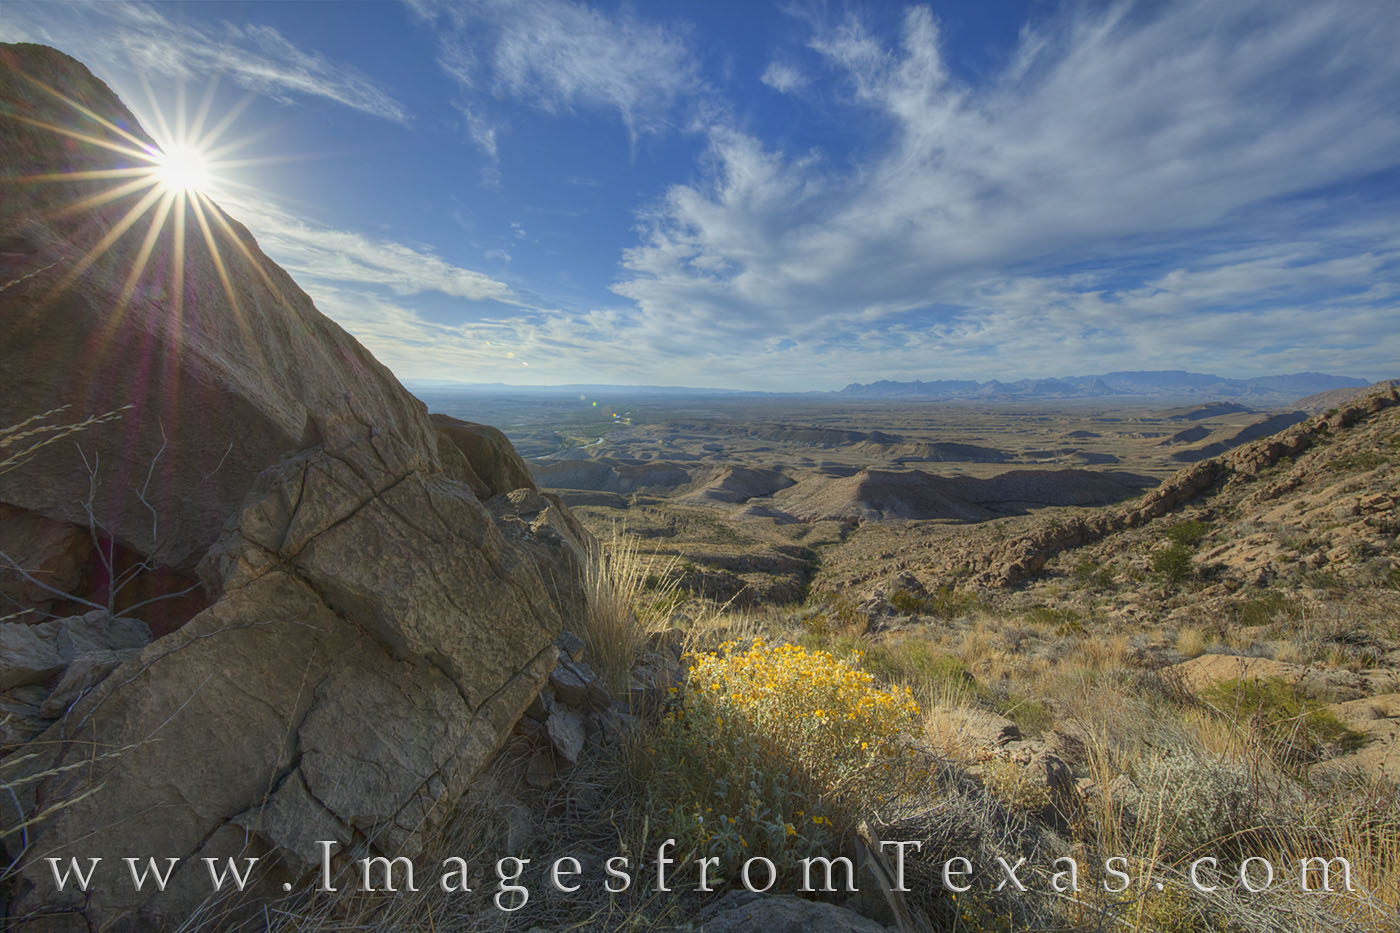 Mariscal trail, Mariscal canyon, rio grande, big bend national park, big bend images, chisos mountains, chihuahuan desert, big bend hikes, hiking big bend, texas hikes, texas adventures, photo